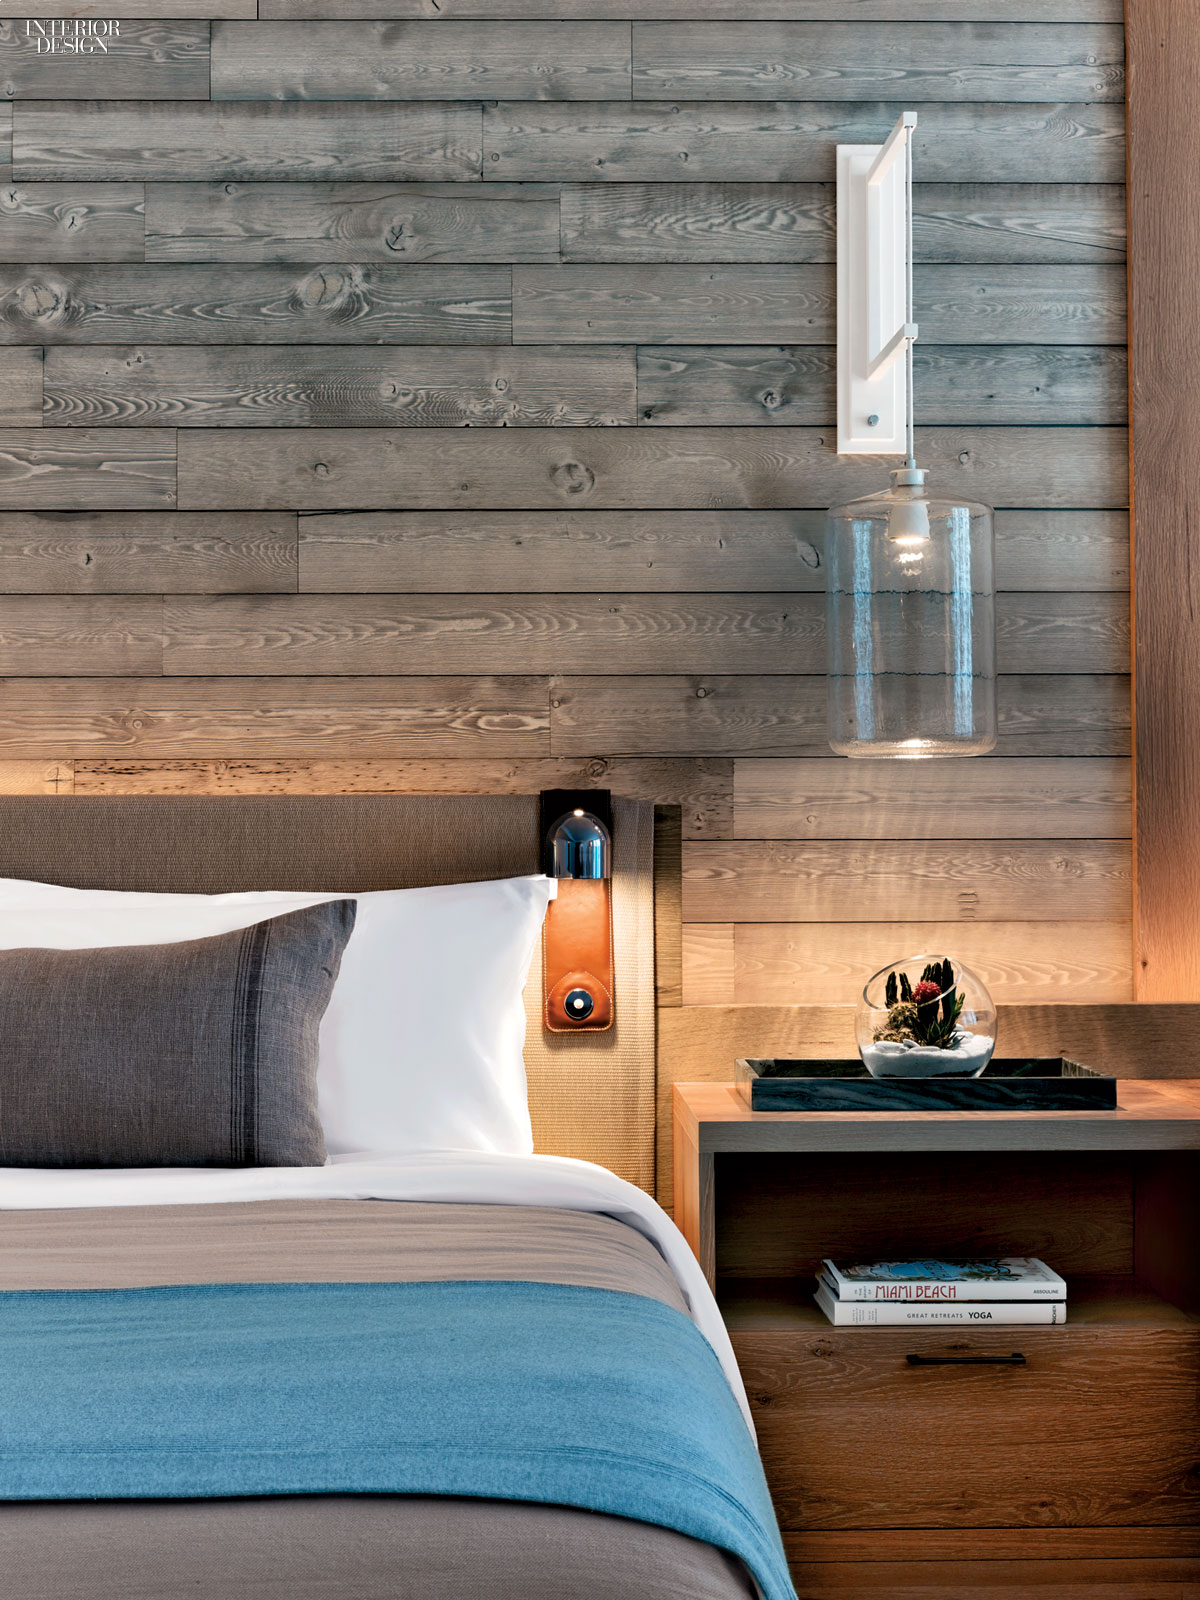 Hotel Room Decor: You're The One: 1 Hotel's Miami Beach Debut By Meyer Davis